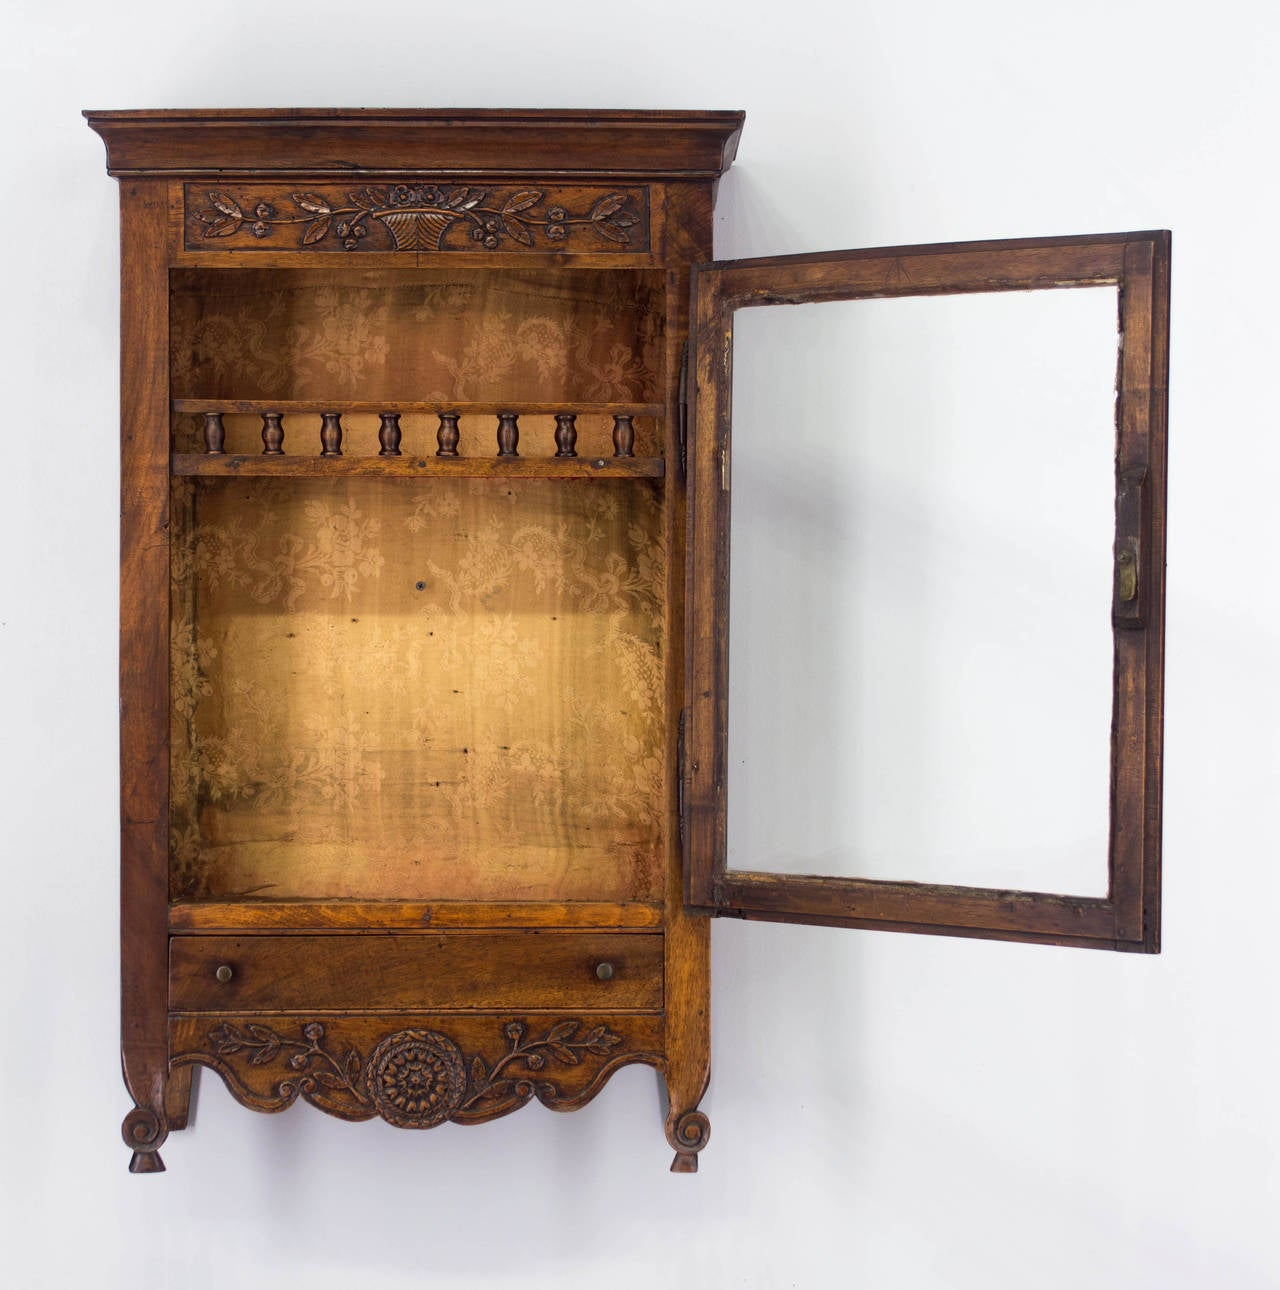 18th Century French Louis XV Verrio or Display Cabinet In Excellent Condition For Sale In Winter Park, FL